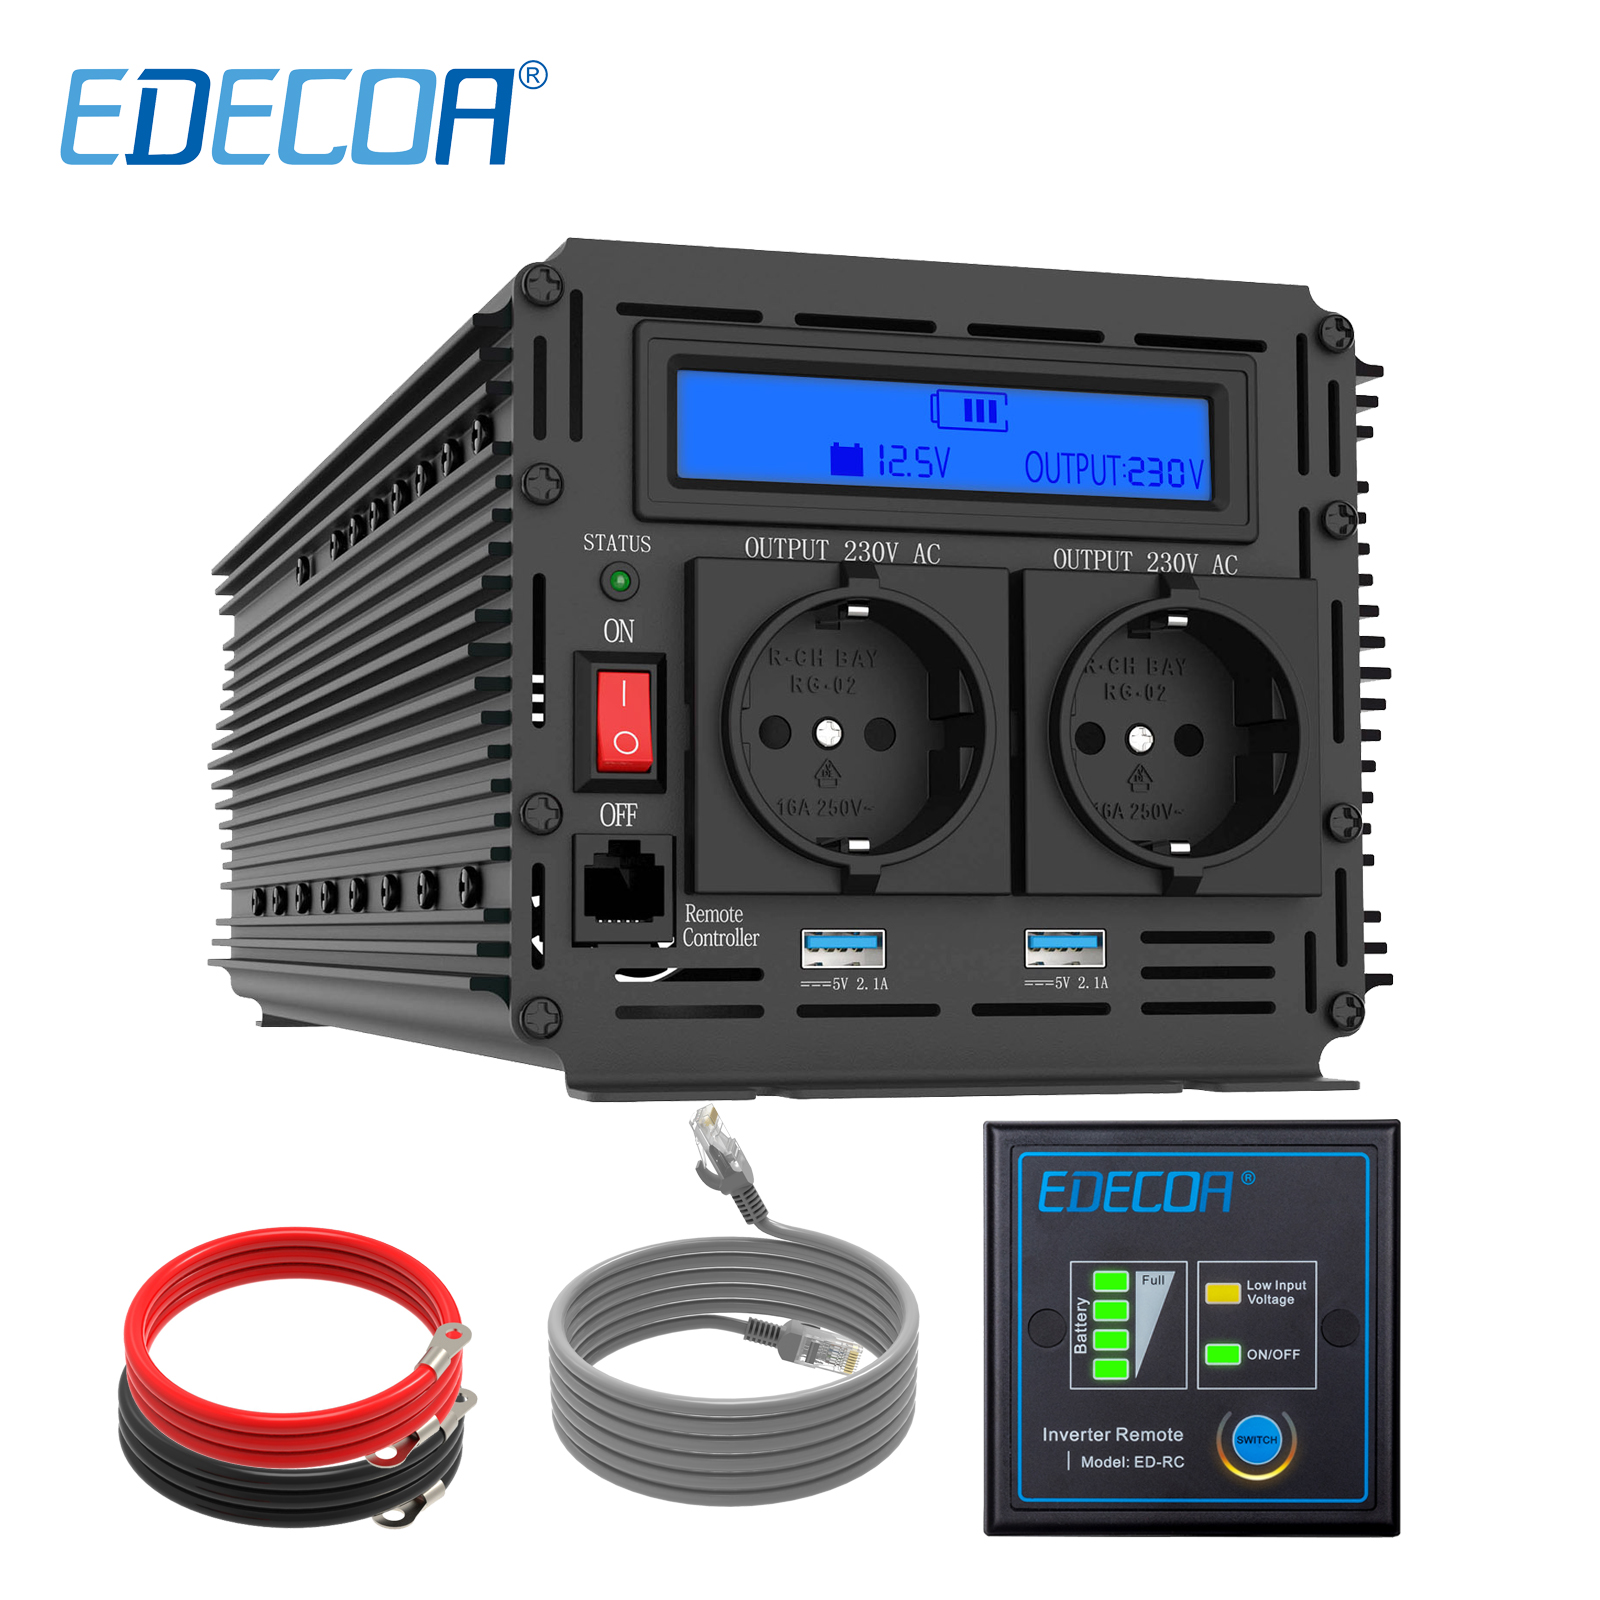 EDECOA power <font><b>inverter</b></font> 3000W <font><b>6000W</b></font> modifizierte sinus welle DC <font><b>12V</b></font> AC 220V <font><b>230V</b></font> mit fernbedienung controller und 5V 2.1A USB LCD display image